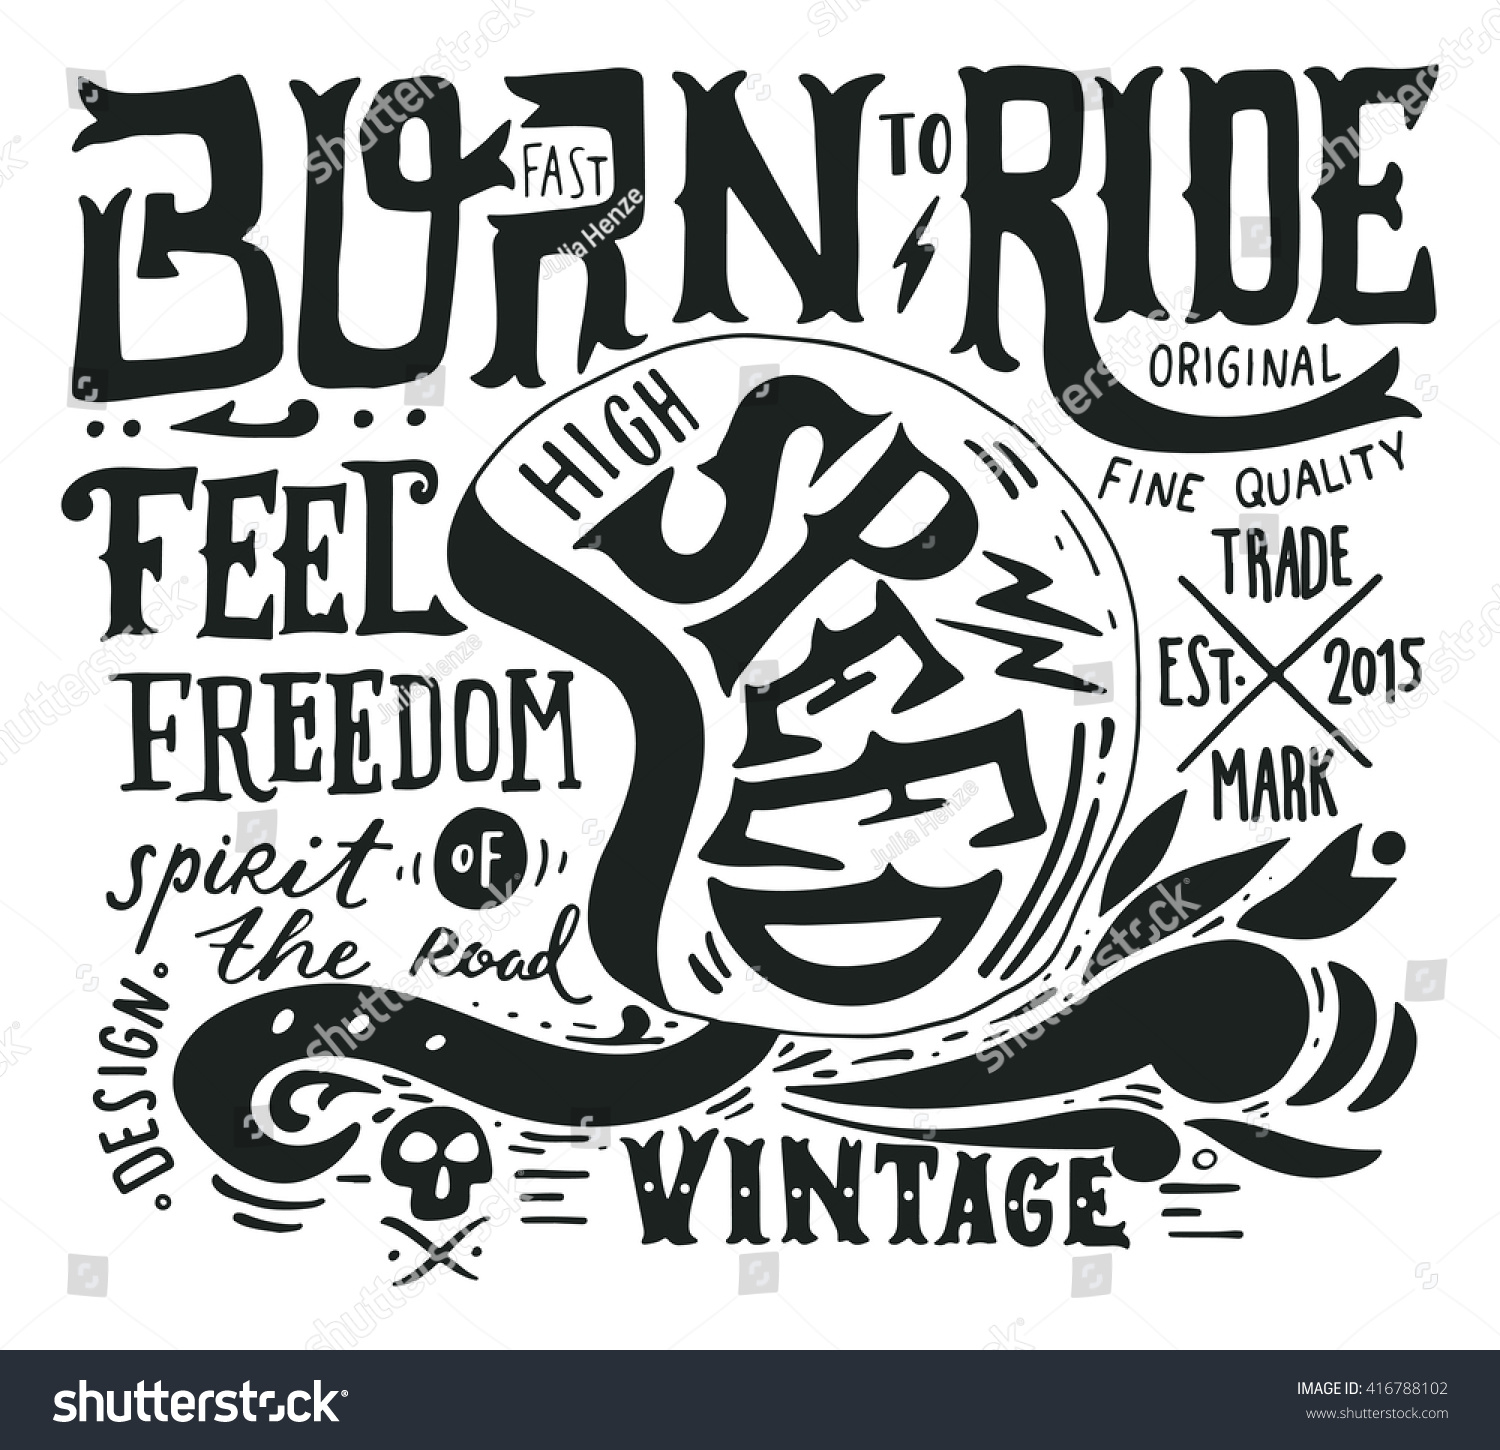 Hand drawn grunge vintage illustration with hand lettering and a retro helmet skull and decoration elements This illustration can be used as a print on t-shirts and bags stationary or as a poster